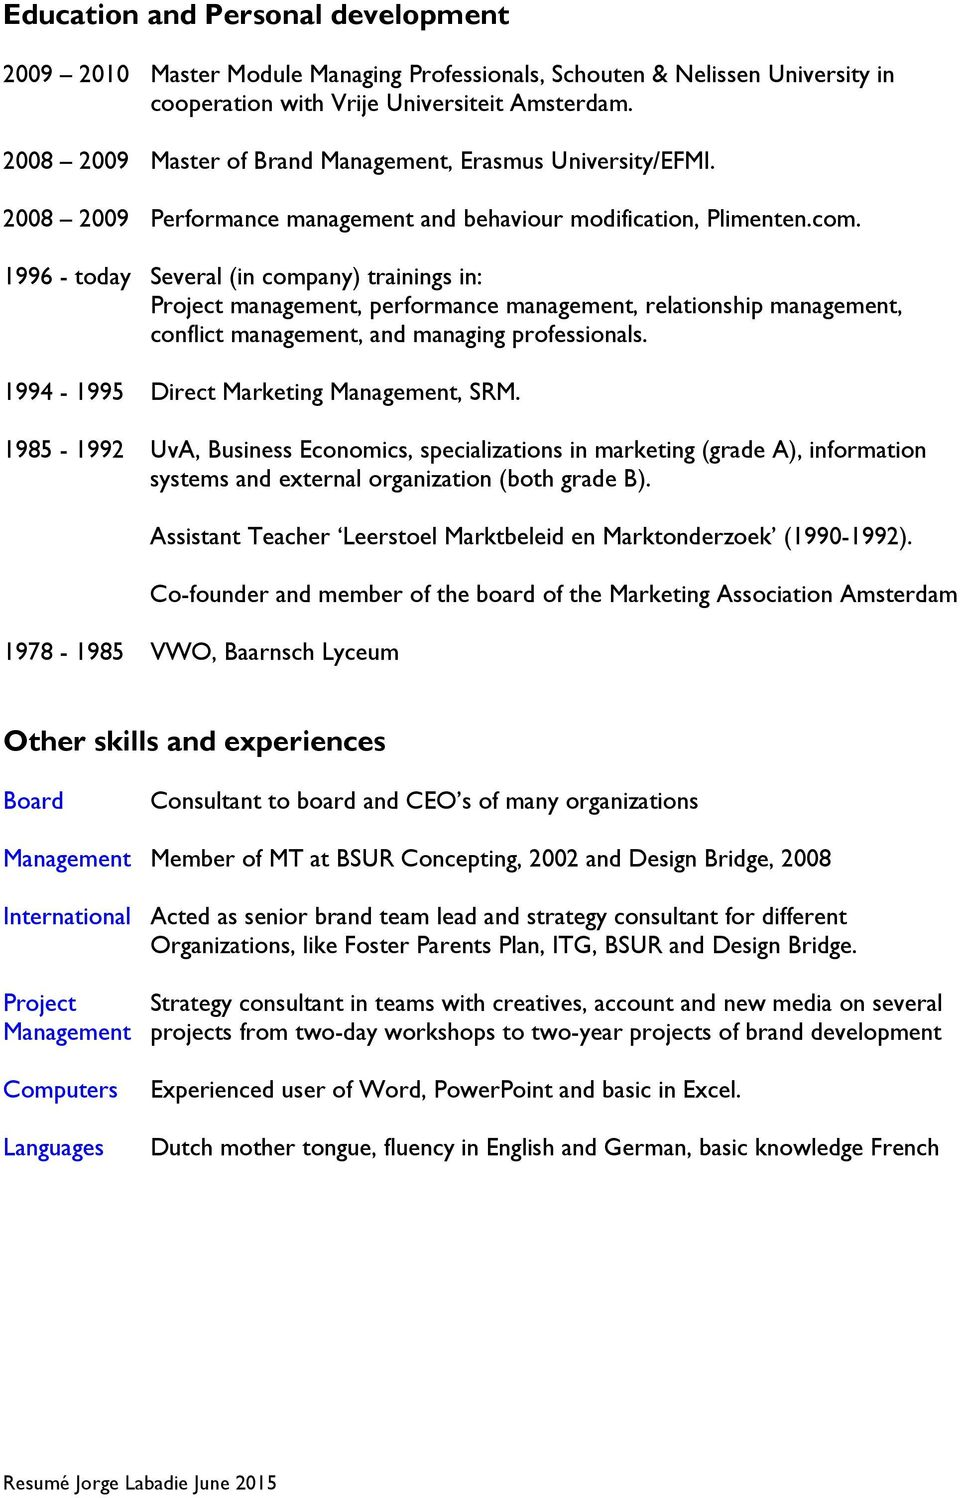 1996 - today Several (in company) trainings in: Project management, performance management, relationship management, conflict management, and managing professionals.